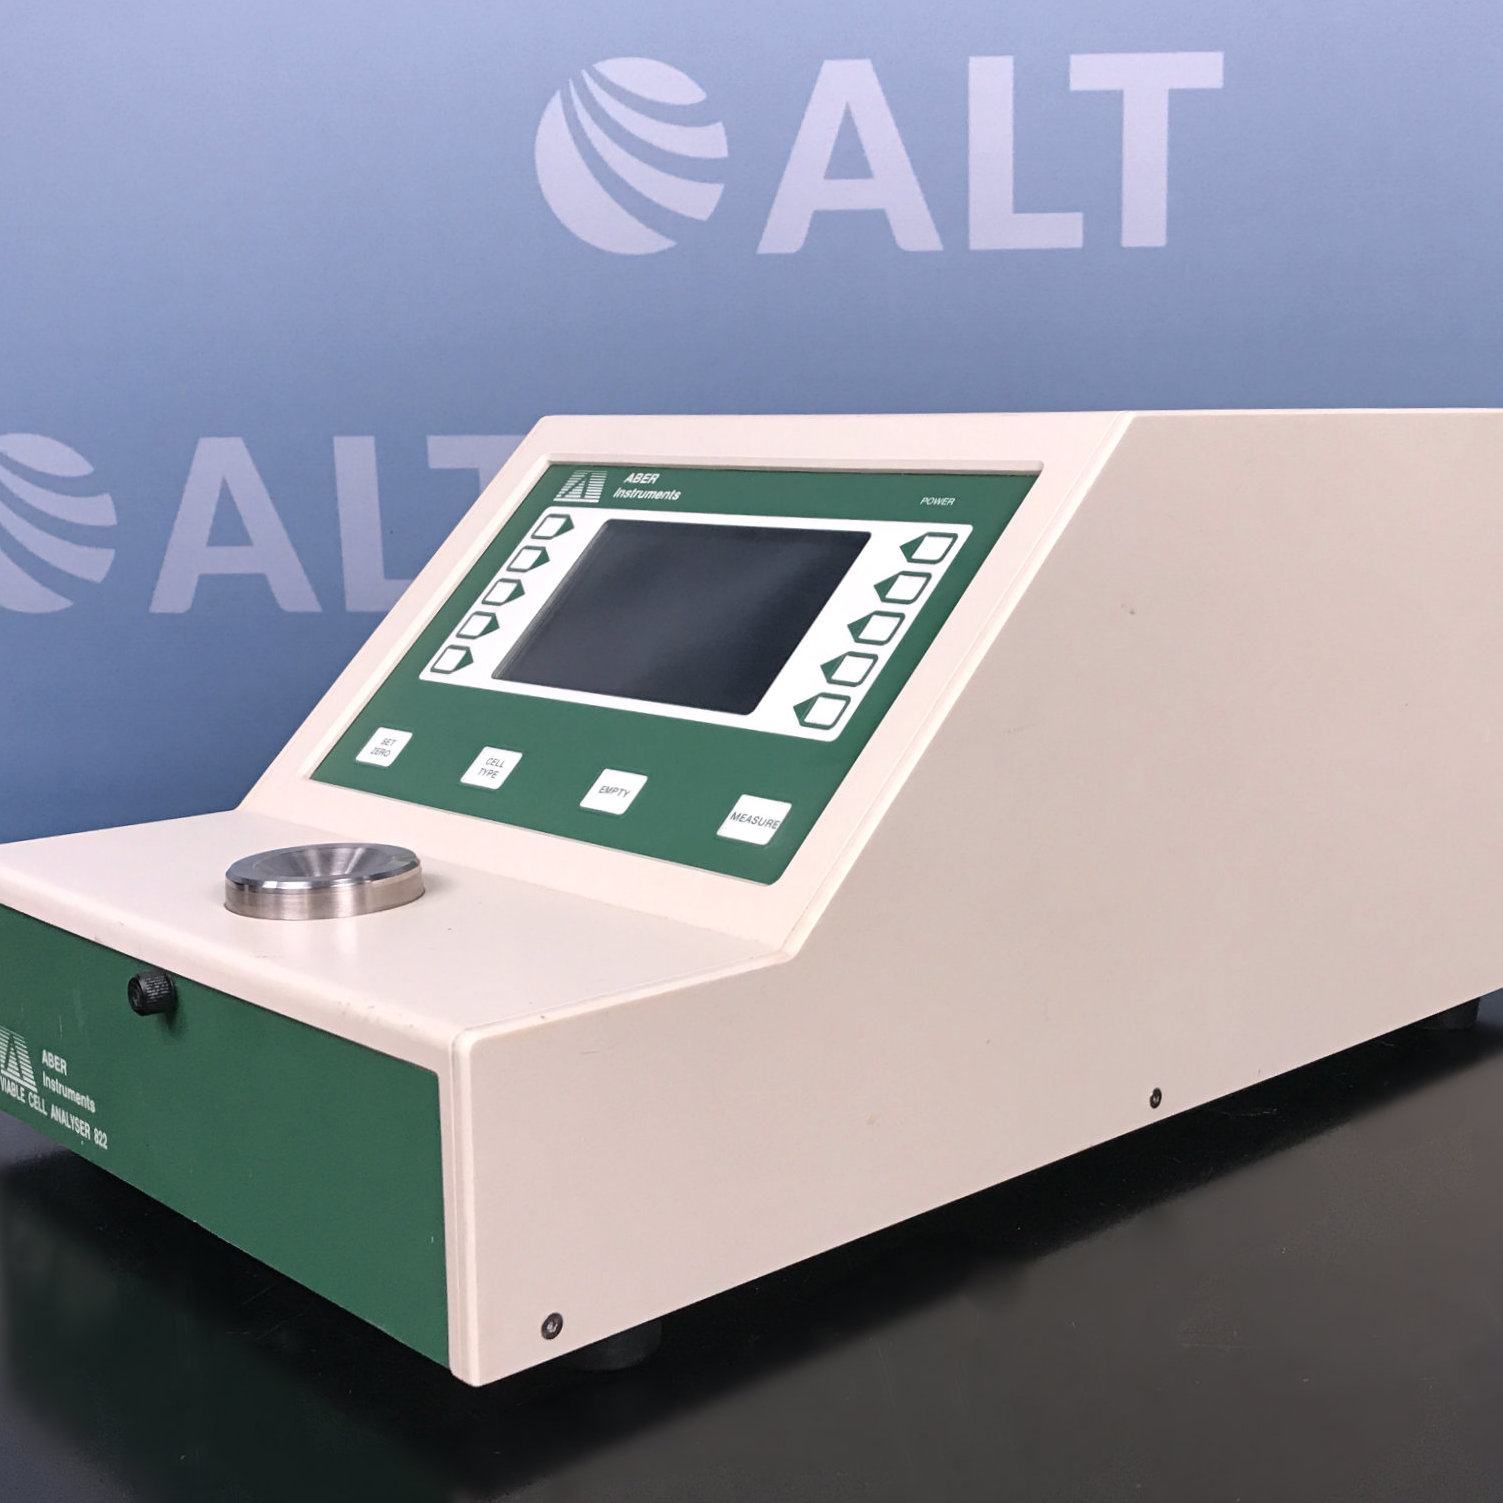 ABER Instruments VIABLE Cell Analyser 822 Image